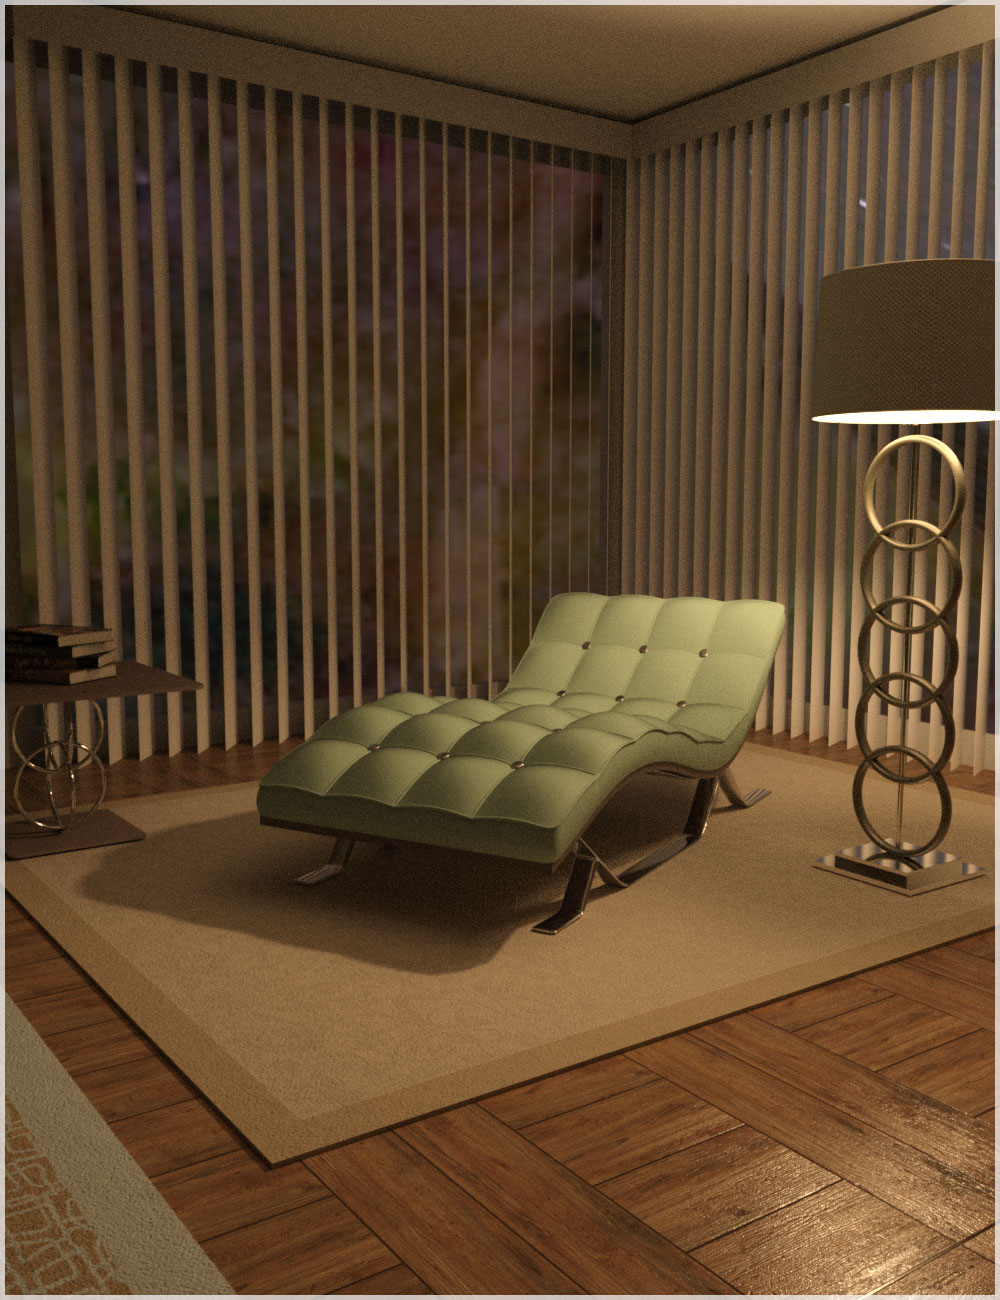 Living Space by: Belladzines, 3D Models by Daz 3D